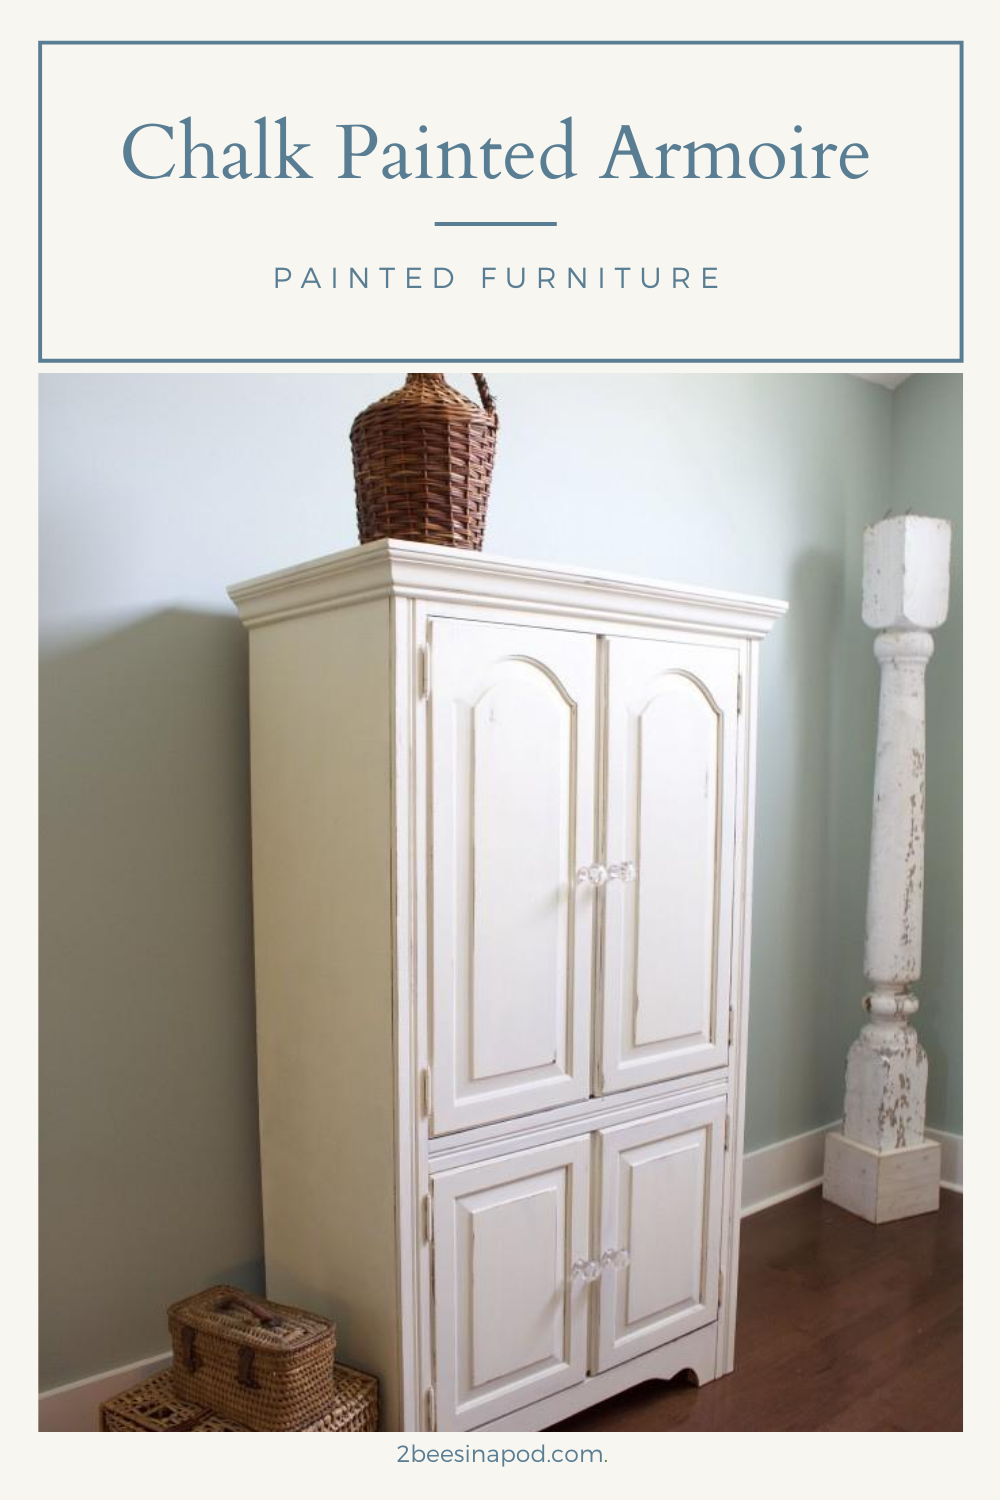 Painted Furniture - Chalk Paint